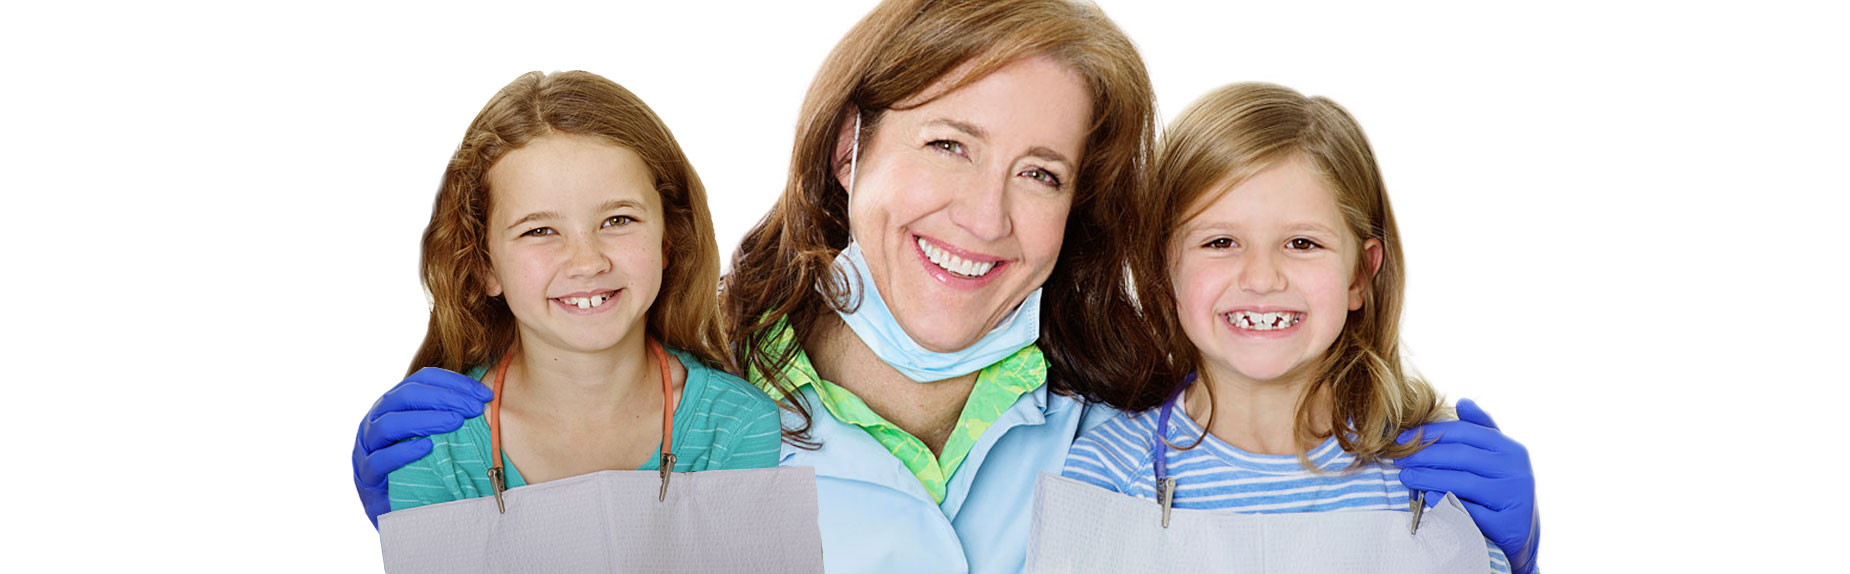 Leslie Hayes offers a wide variety of dental services in Bozeman for adults and children.